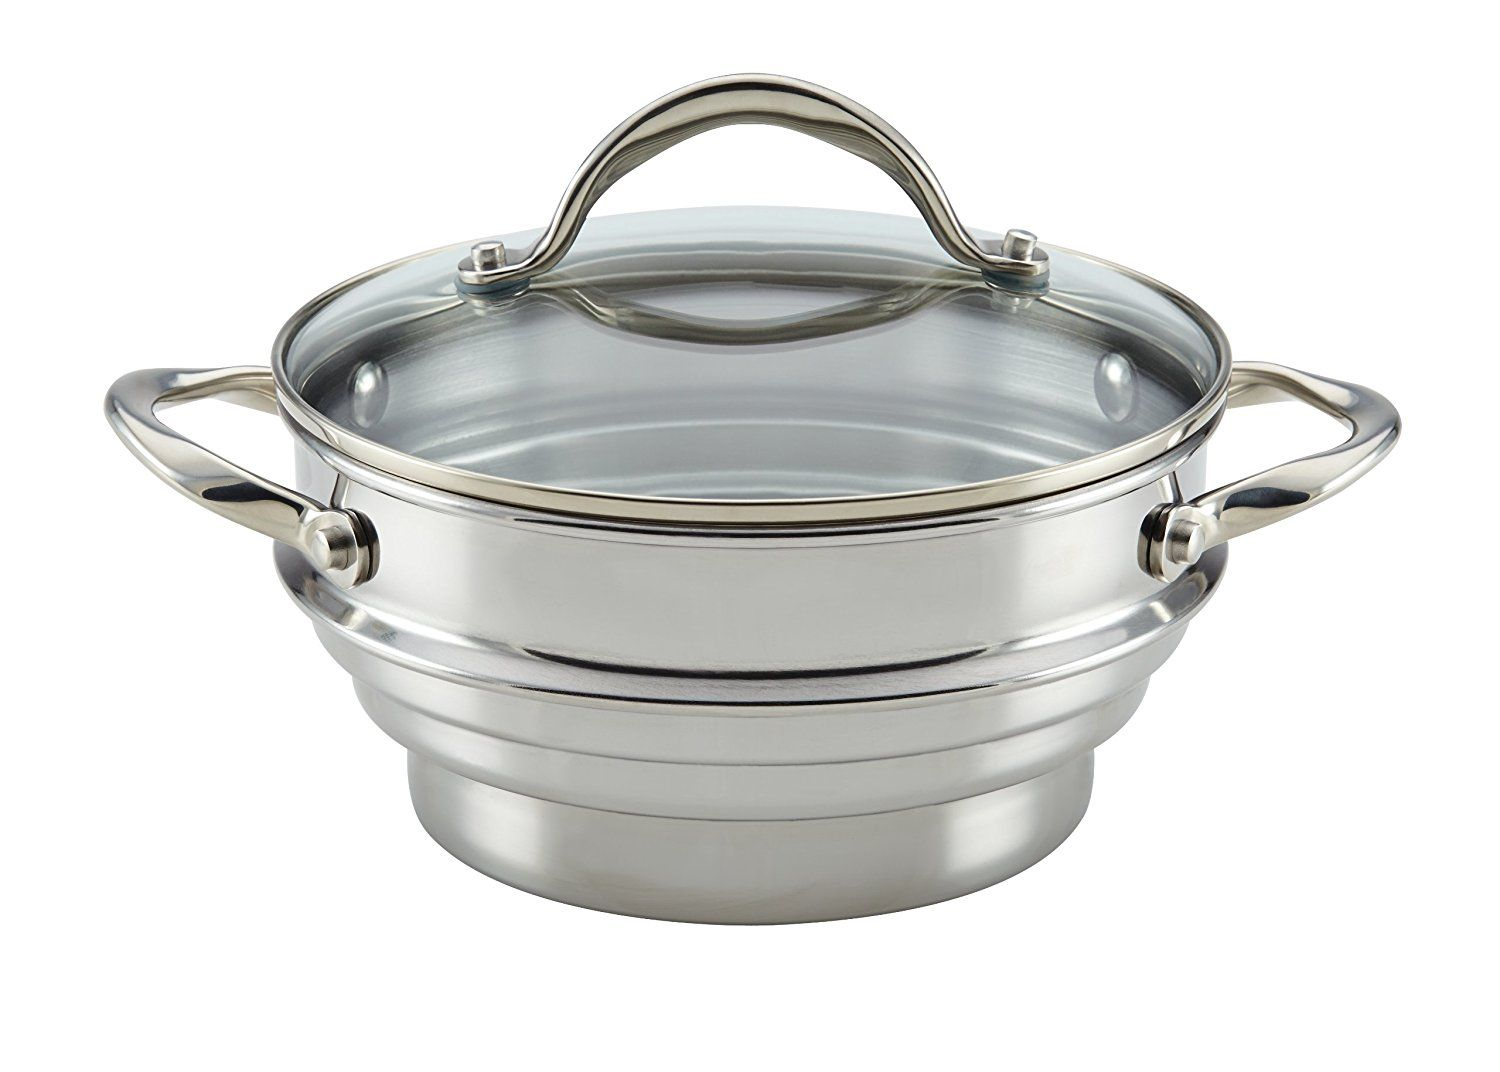 Anolon 77447 classic stainless steel universal covered